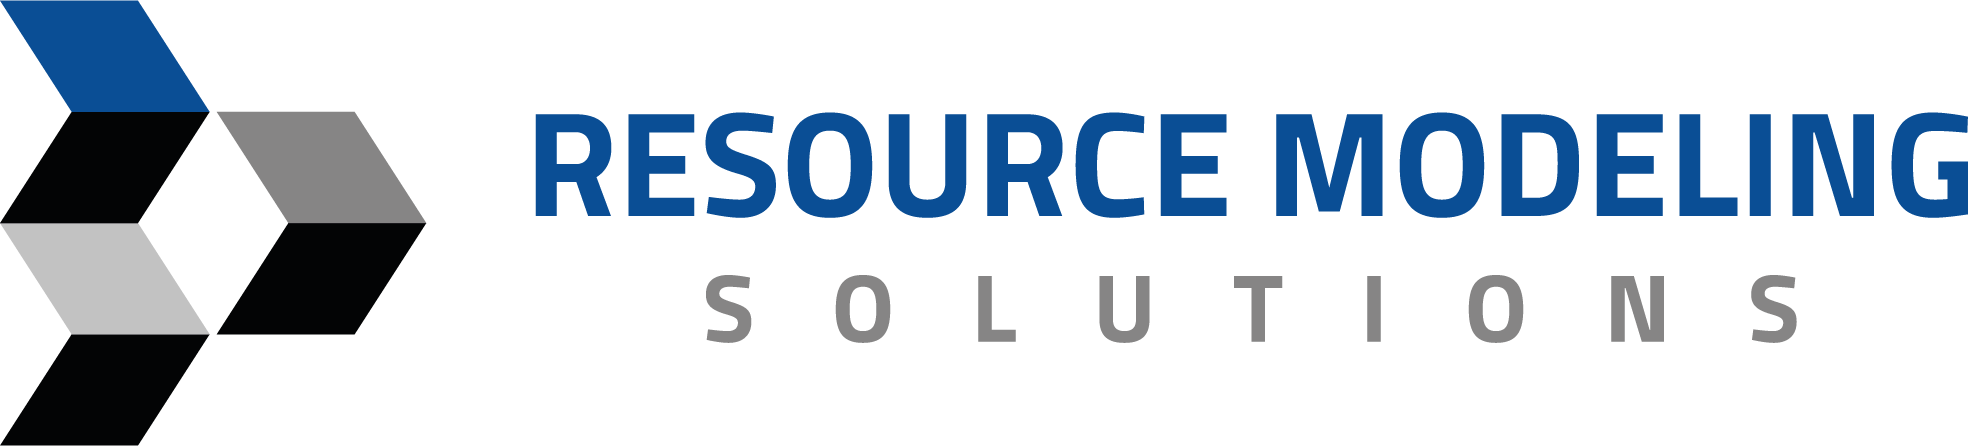 Resource Modeling Solutions Logo